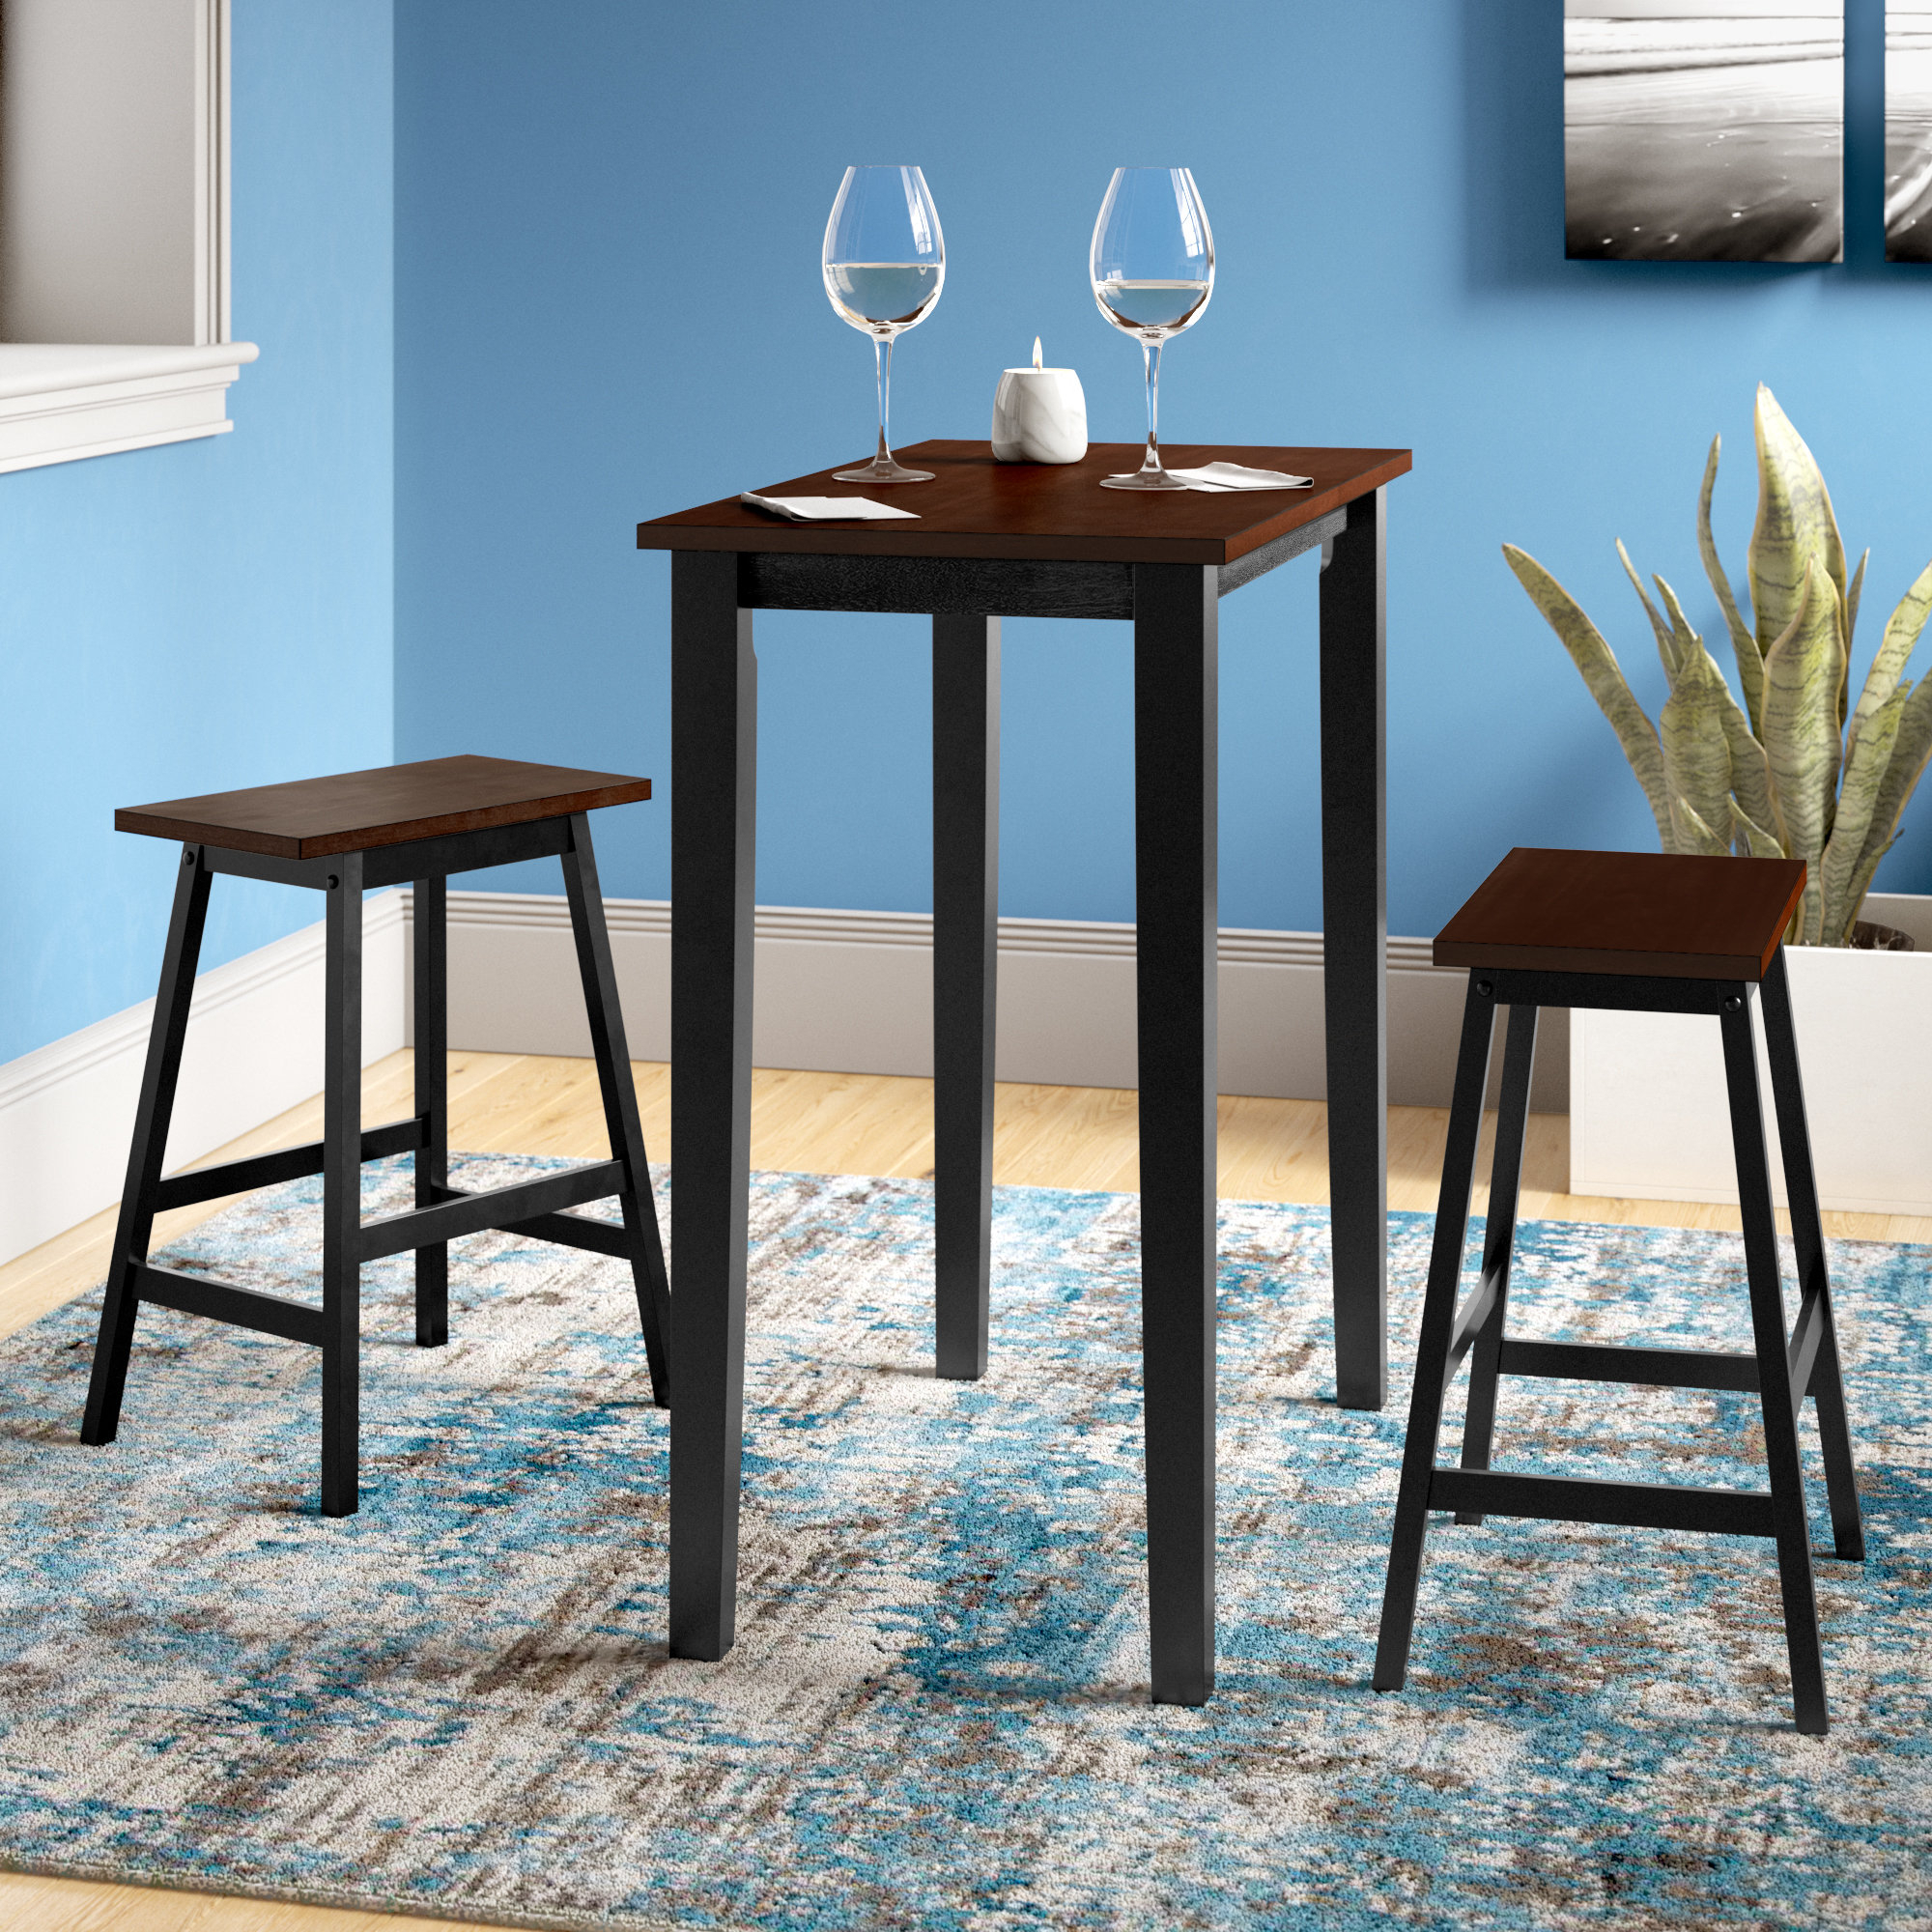 Ryker 3 Piece Dining Set With Well Known Ryker 3 Piece Dining Sets (View 9 of 20)